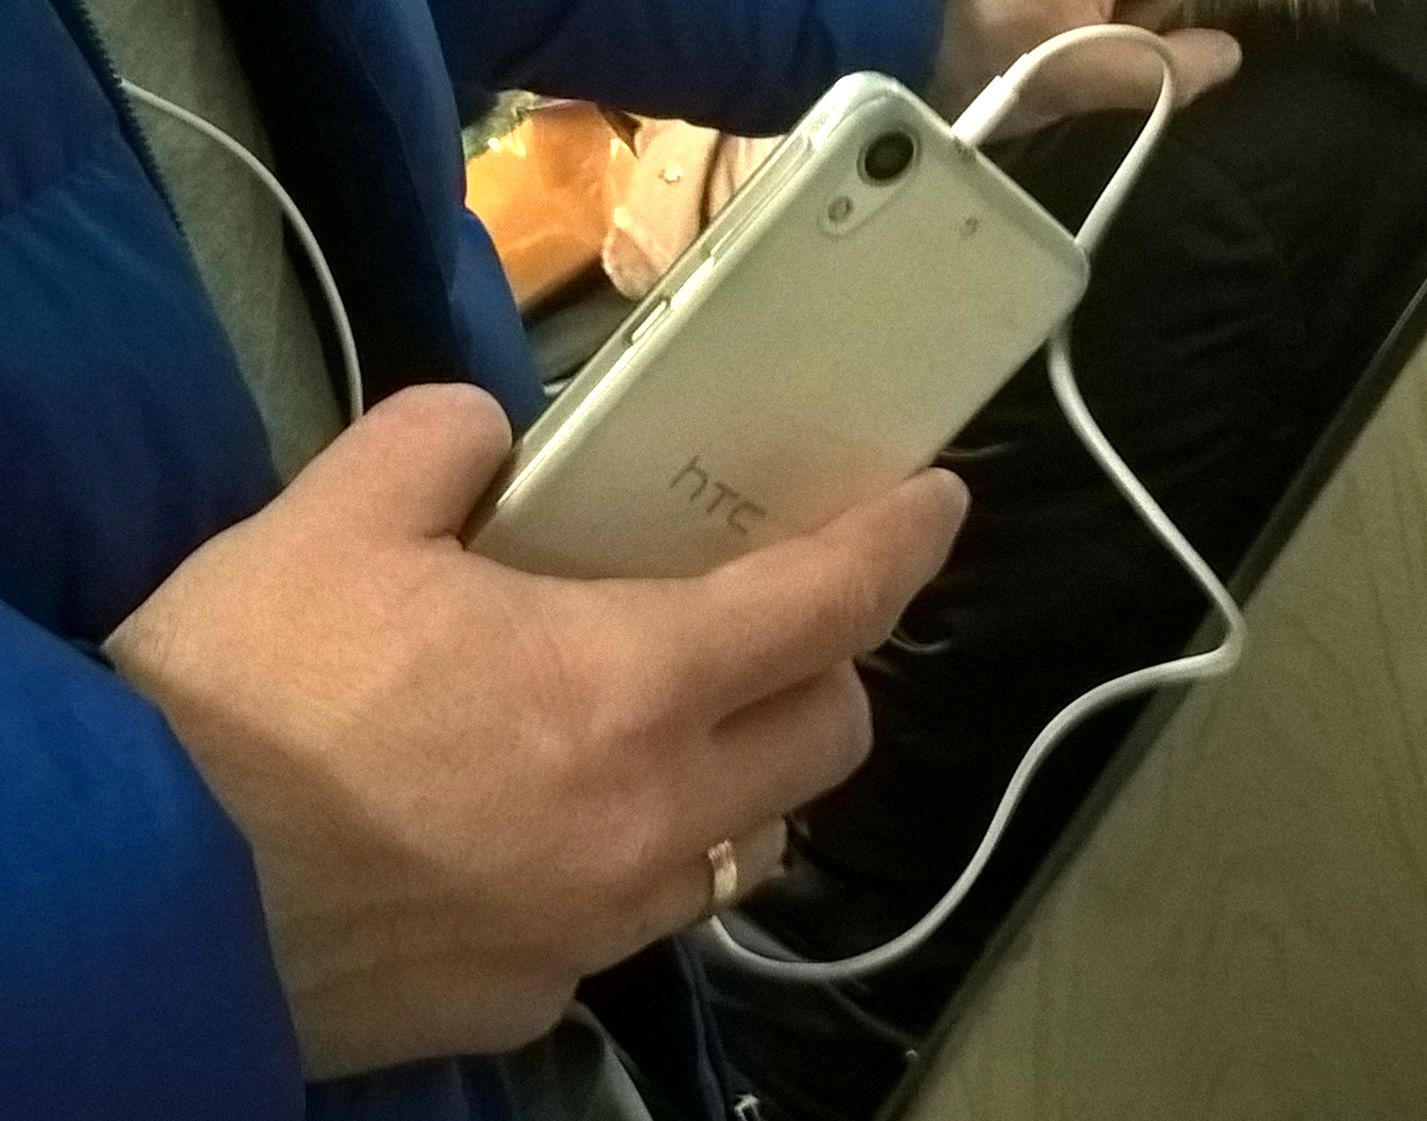 Smartphone amputee missing fingers